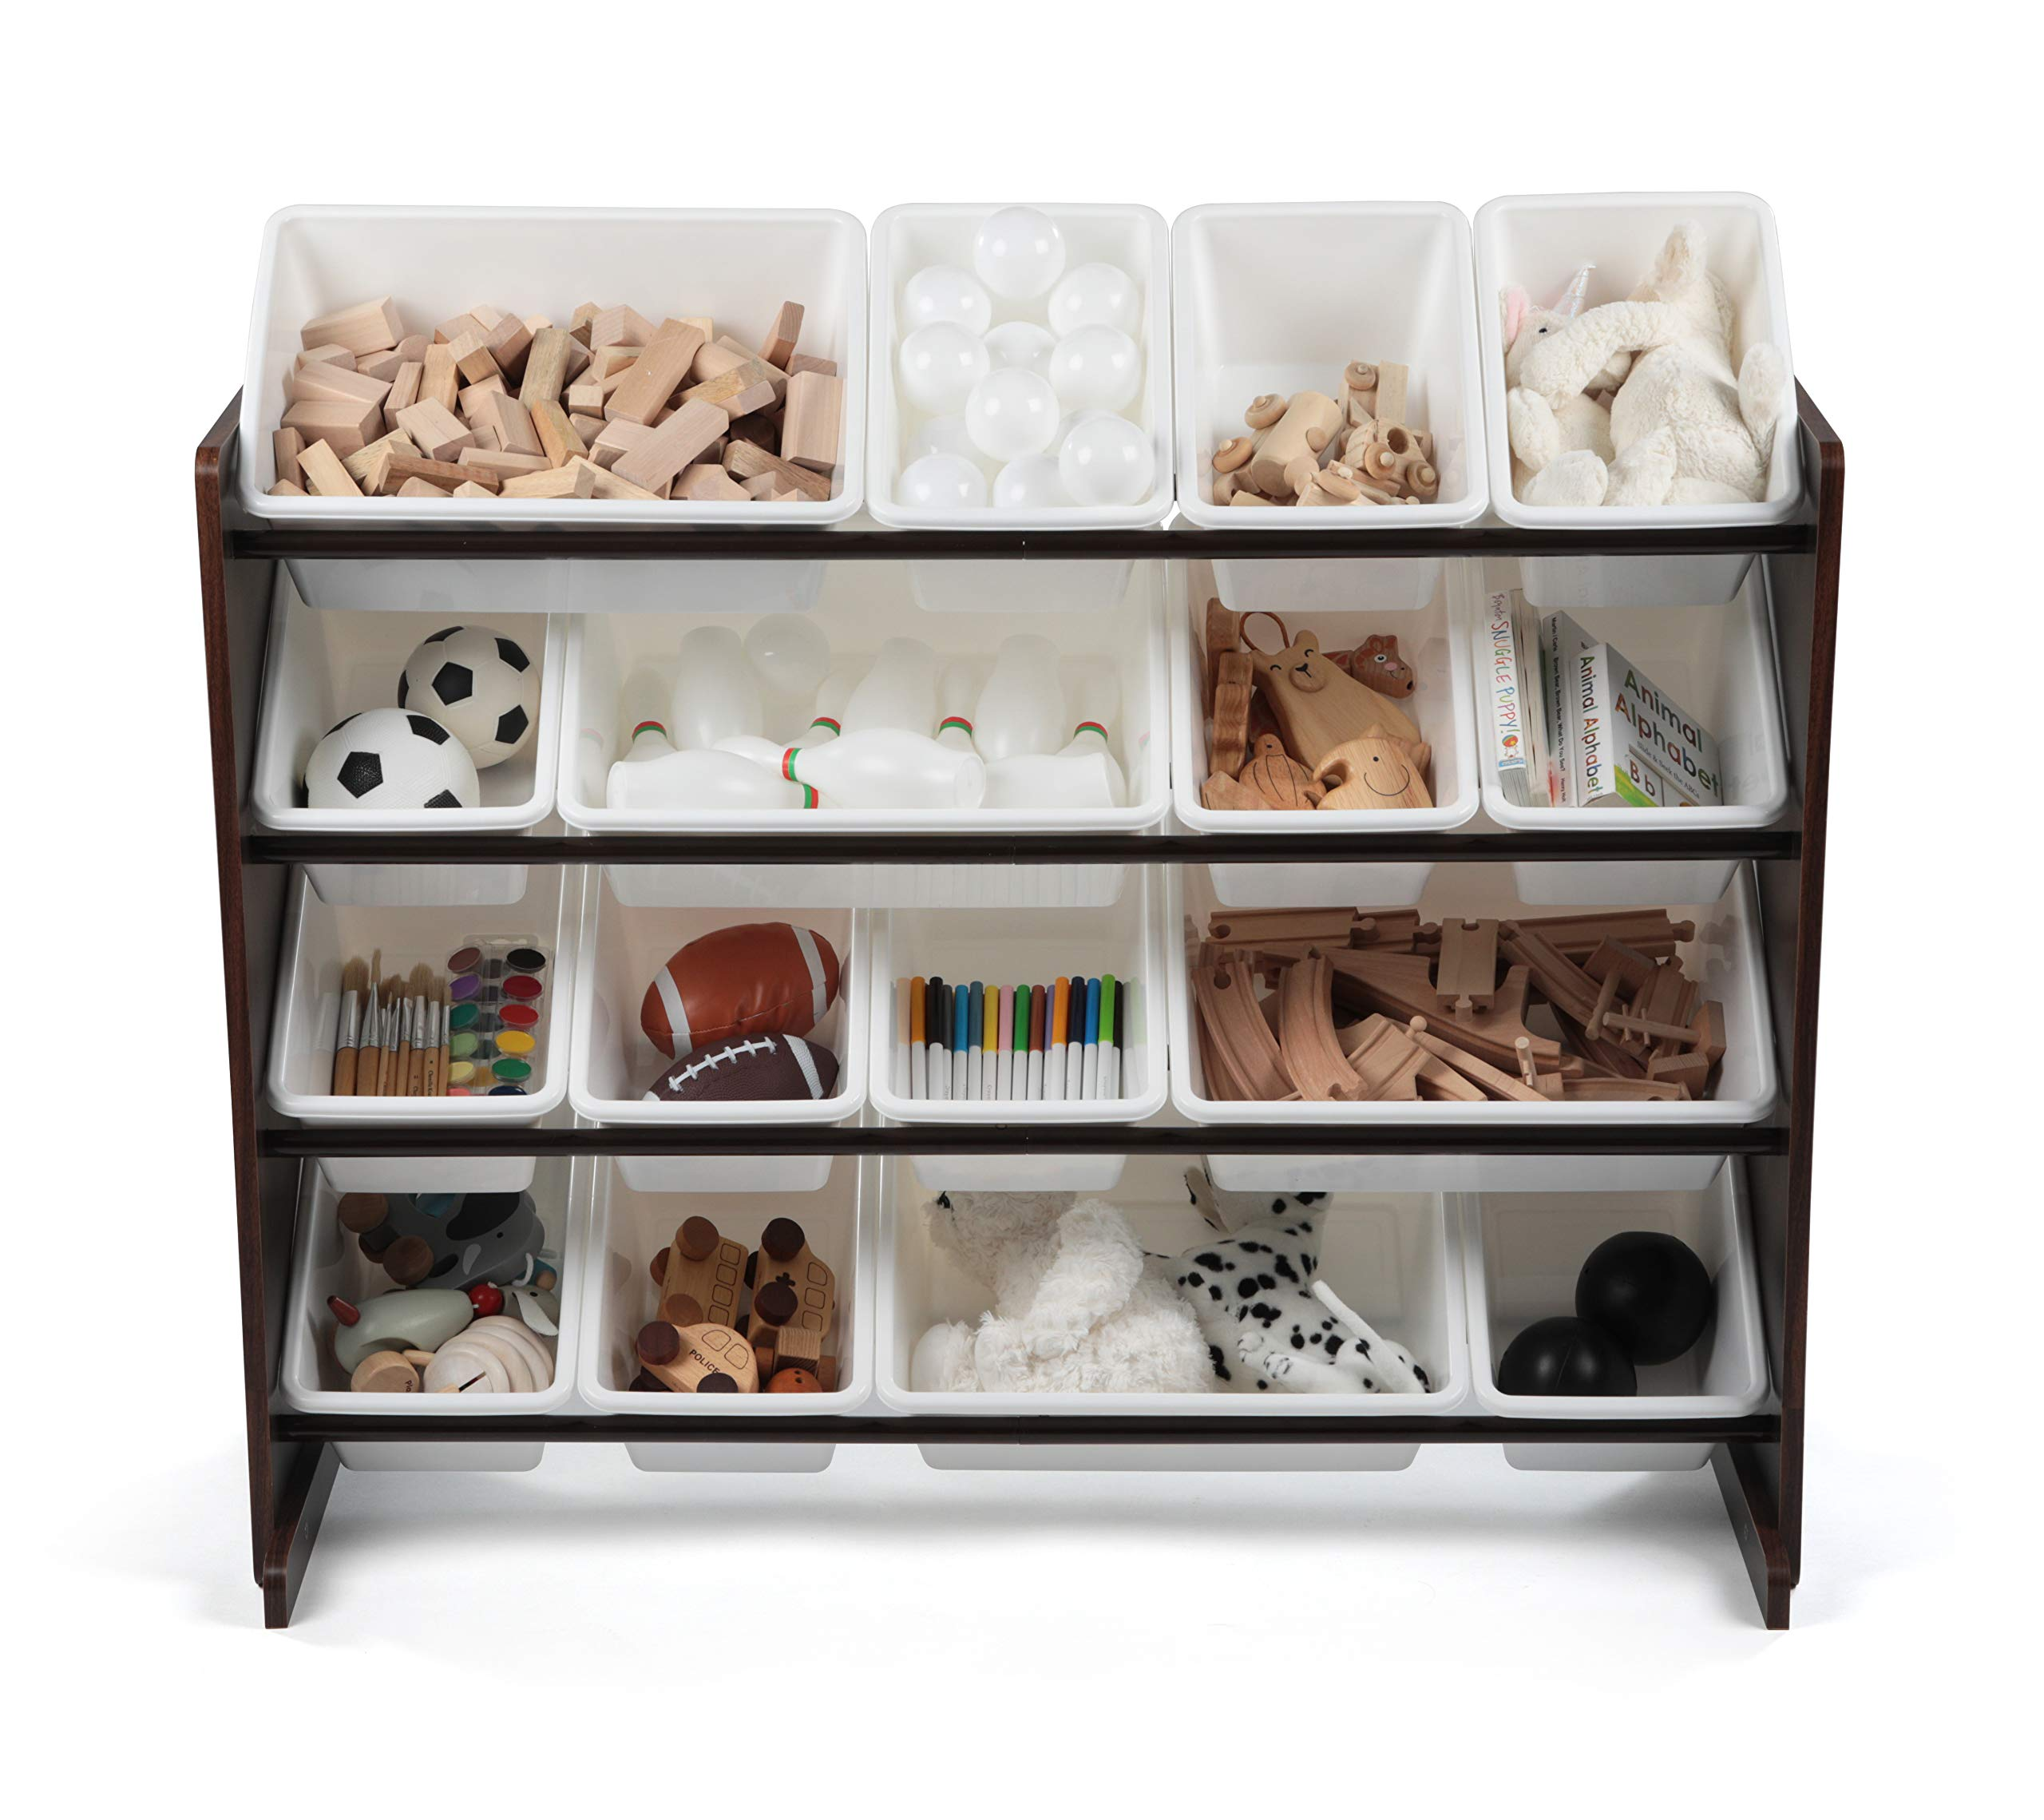 Tot Tutors WO142 Extra-Large, Supersized Toy Storage Organizer White Bins, Espresso Collection